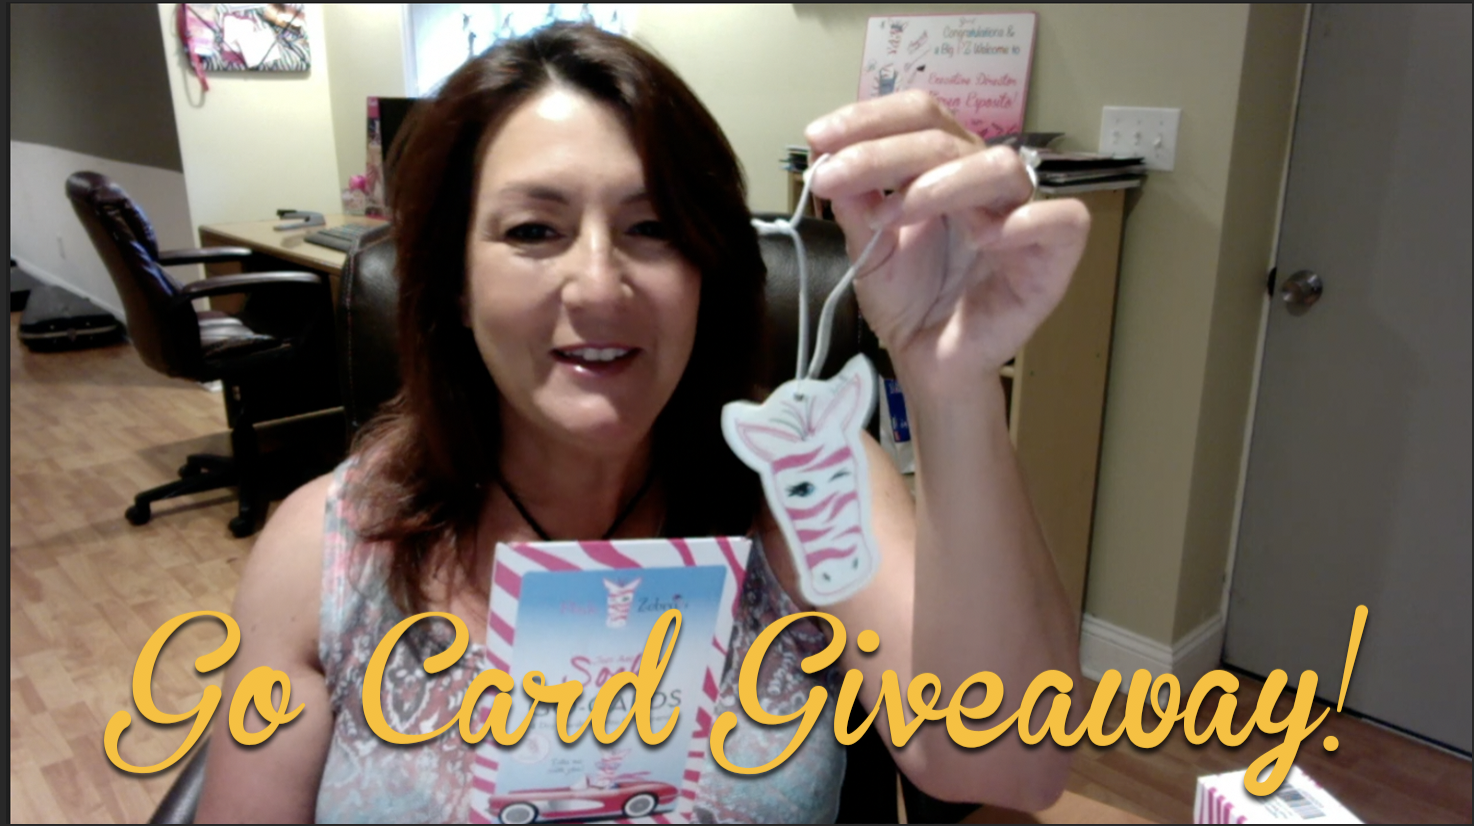 Enter here for your FREE Pink Zebra Go Card